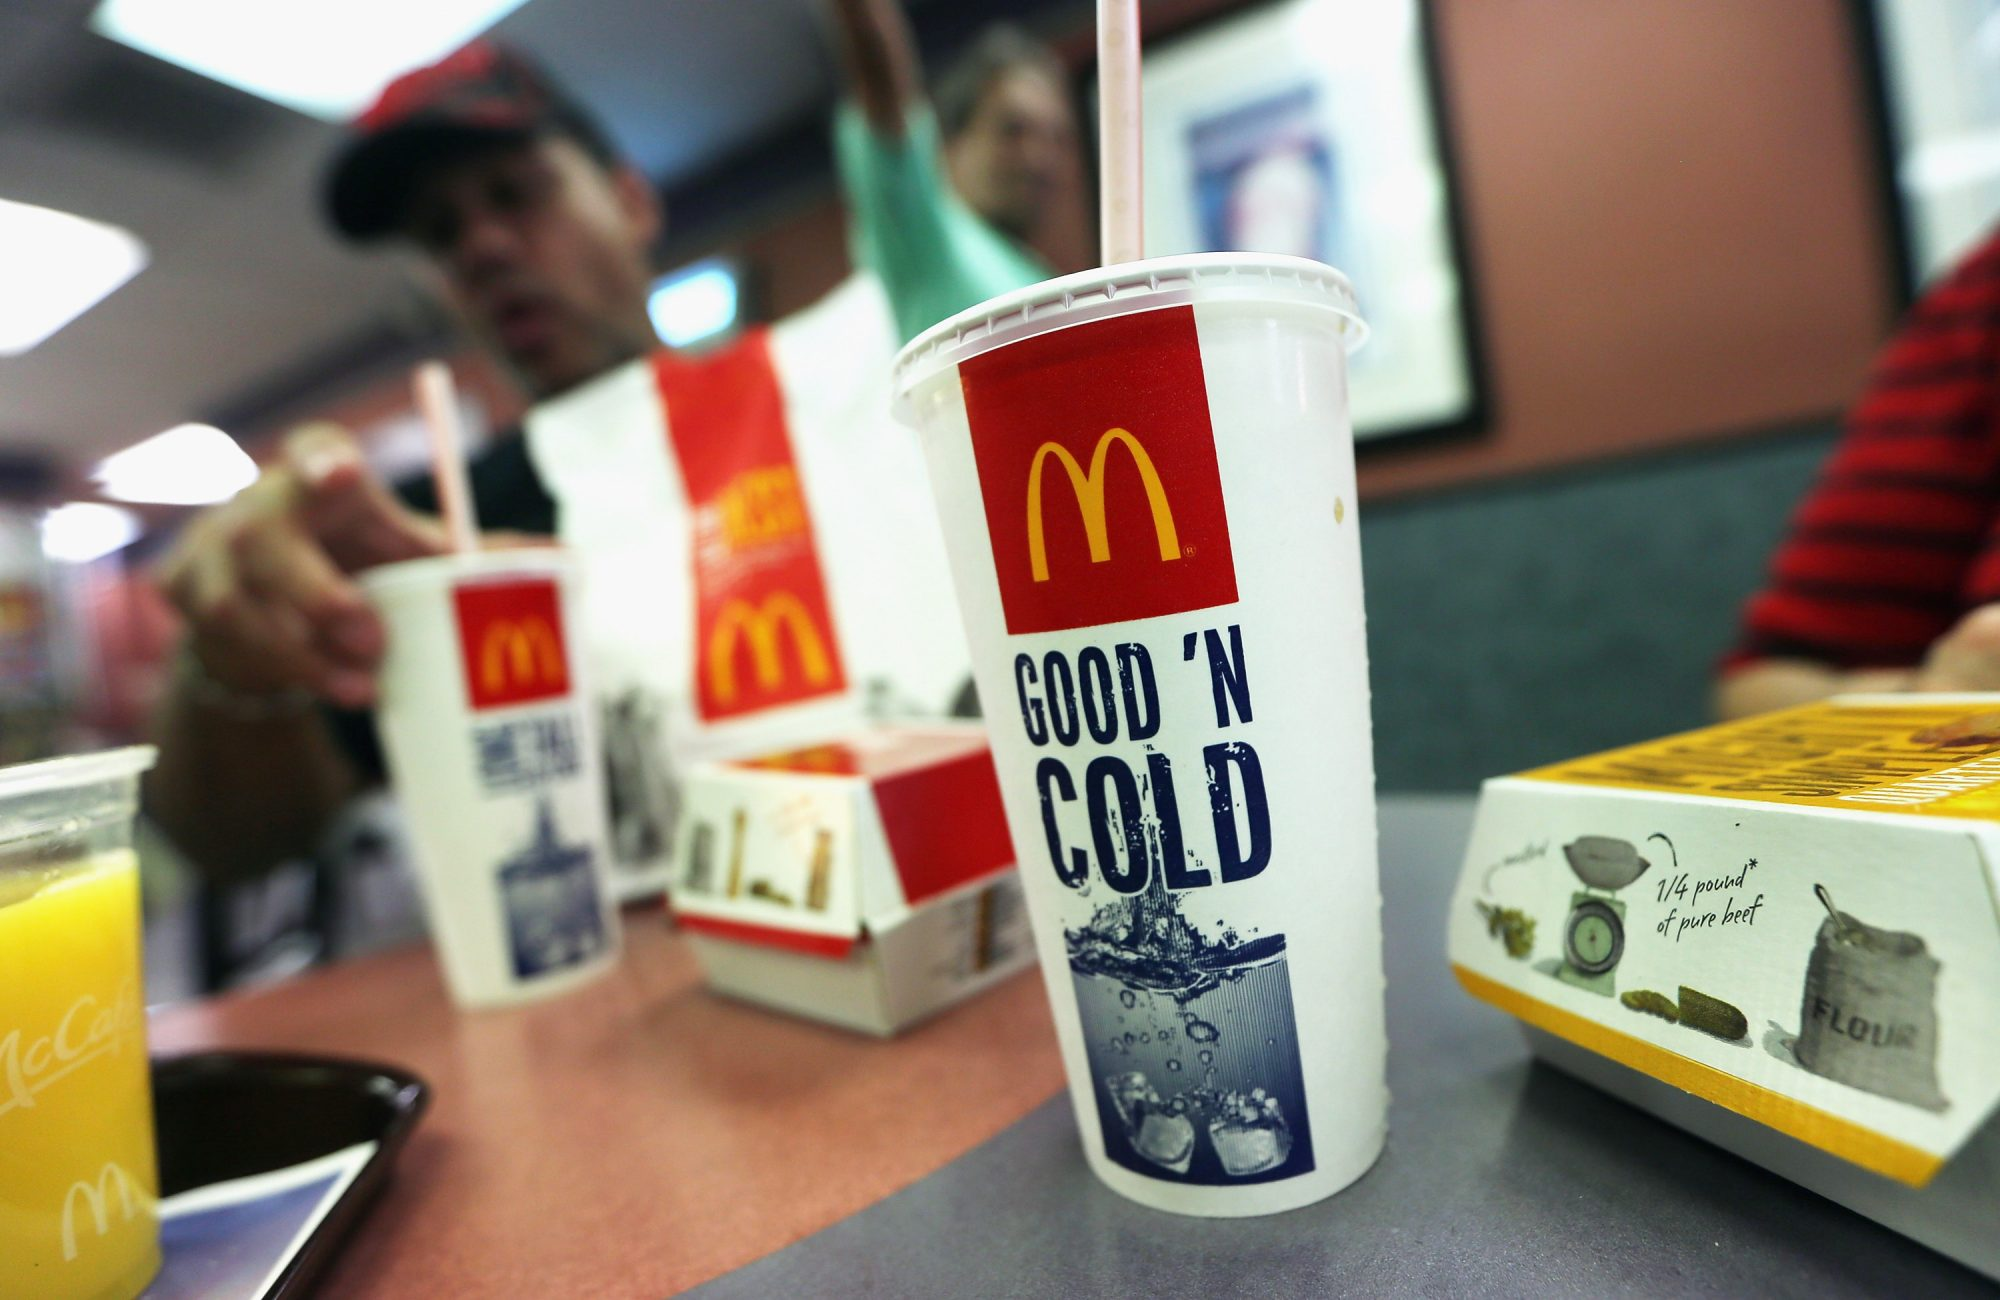 McDonald's Shareholders to Vote This Week on Whether to Ban the Plastic Straw